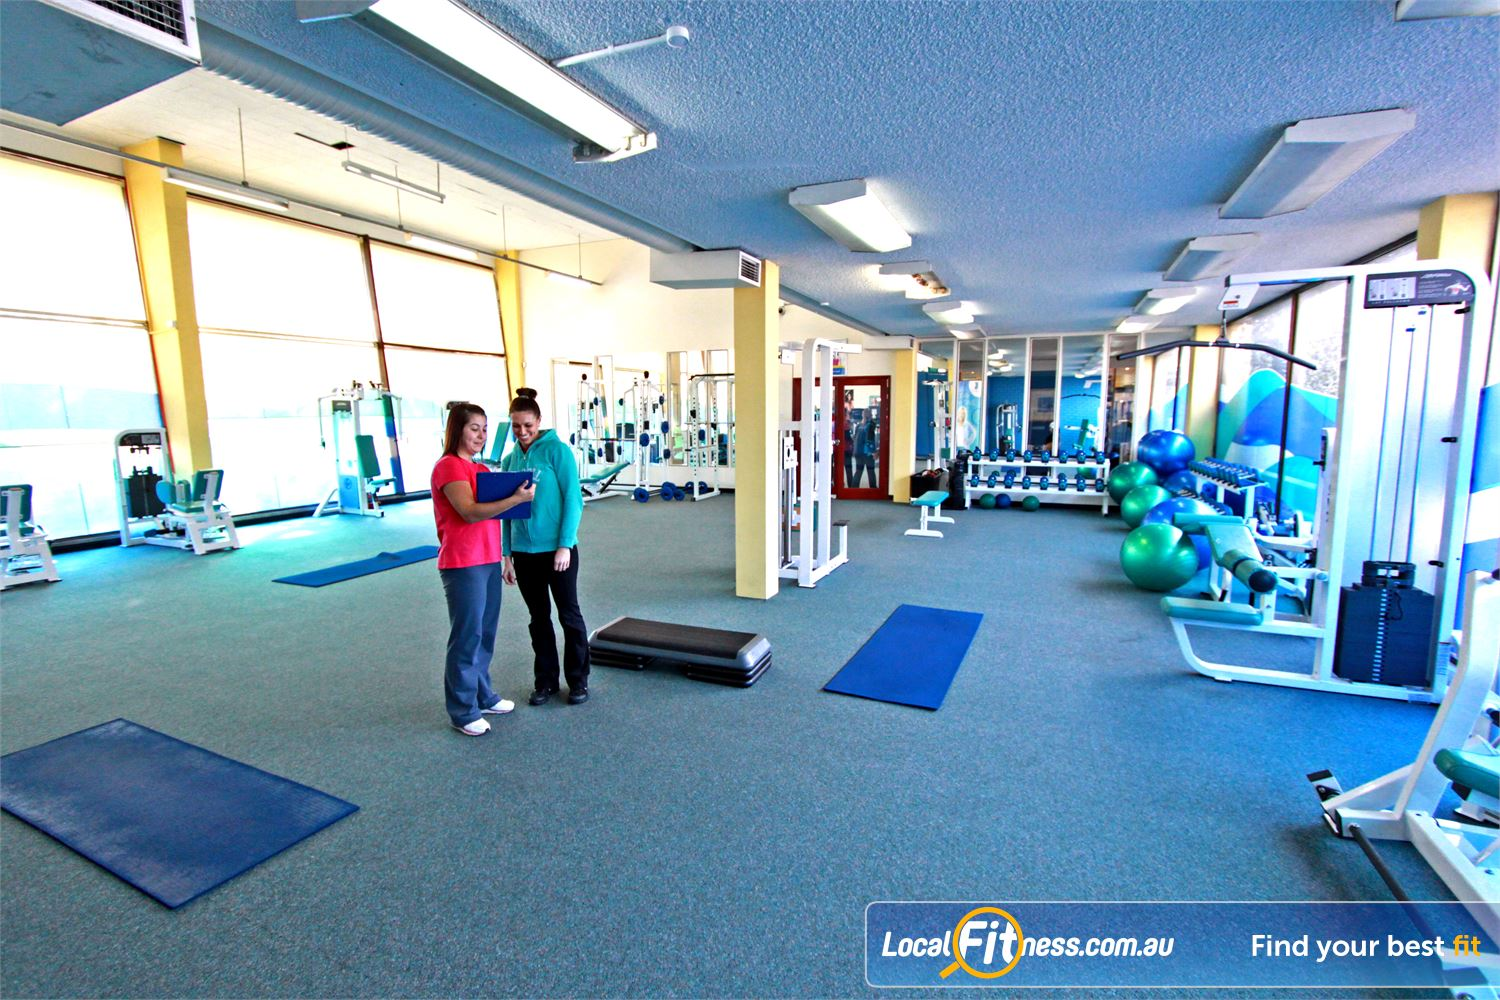 Fernwood Fitness Liverpool Fernwood Liverpool gym provides a 2 level spacious women's only gym.